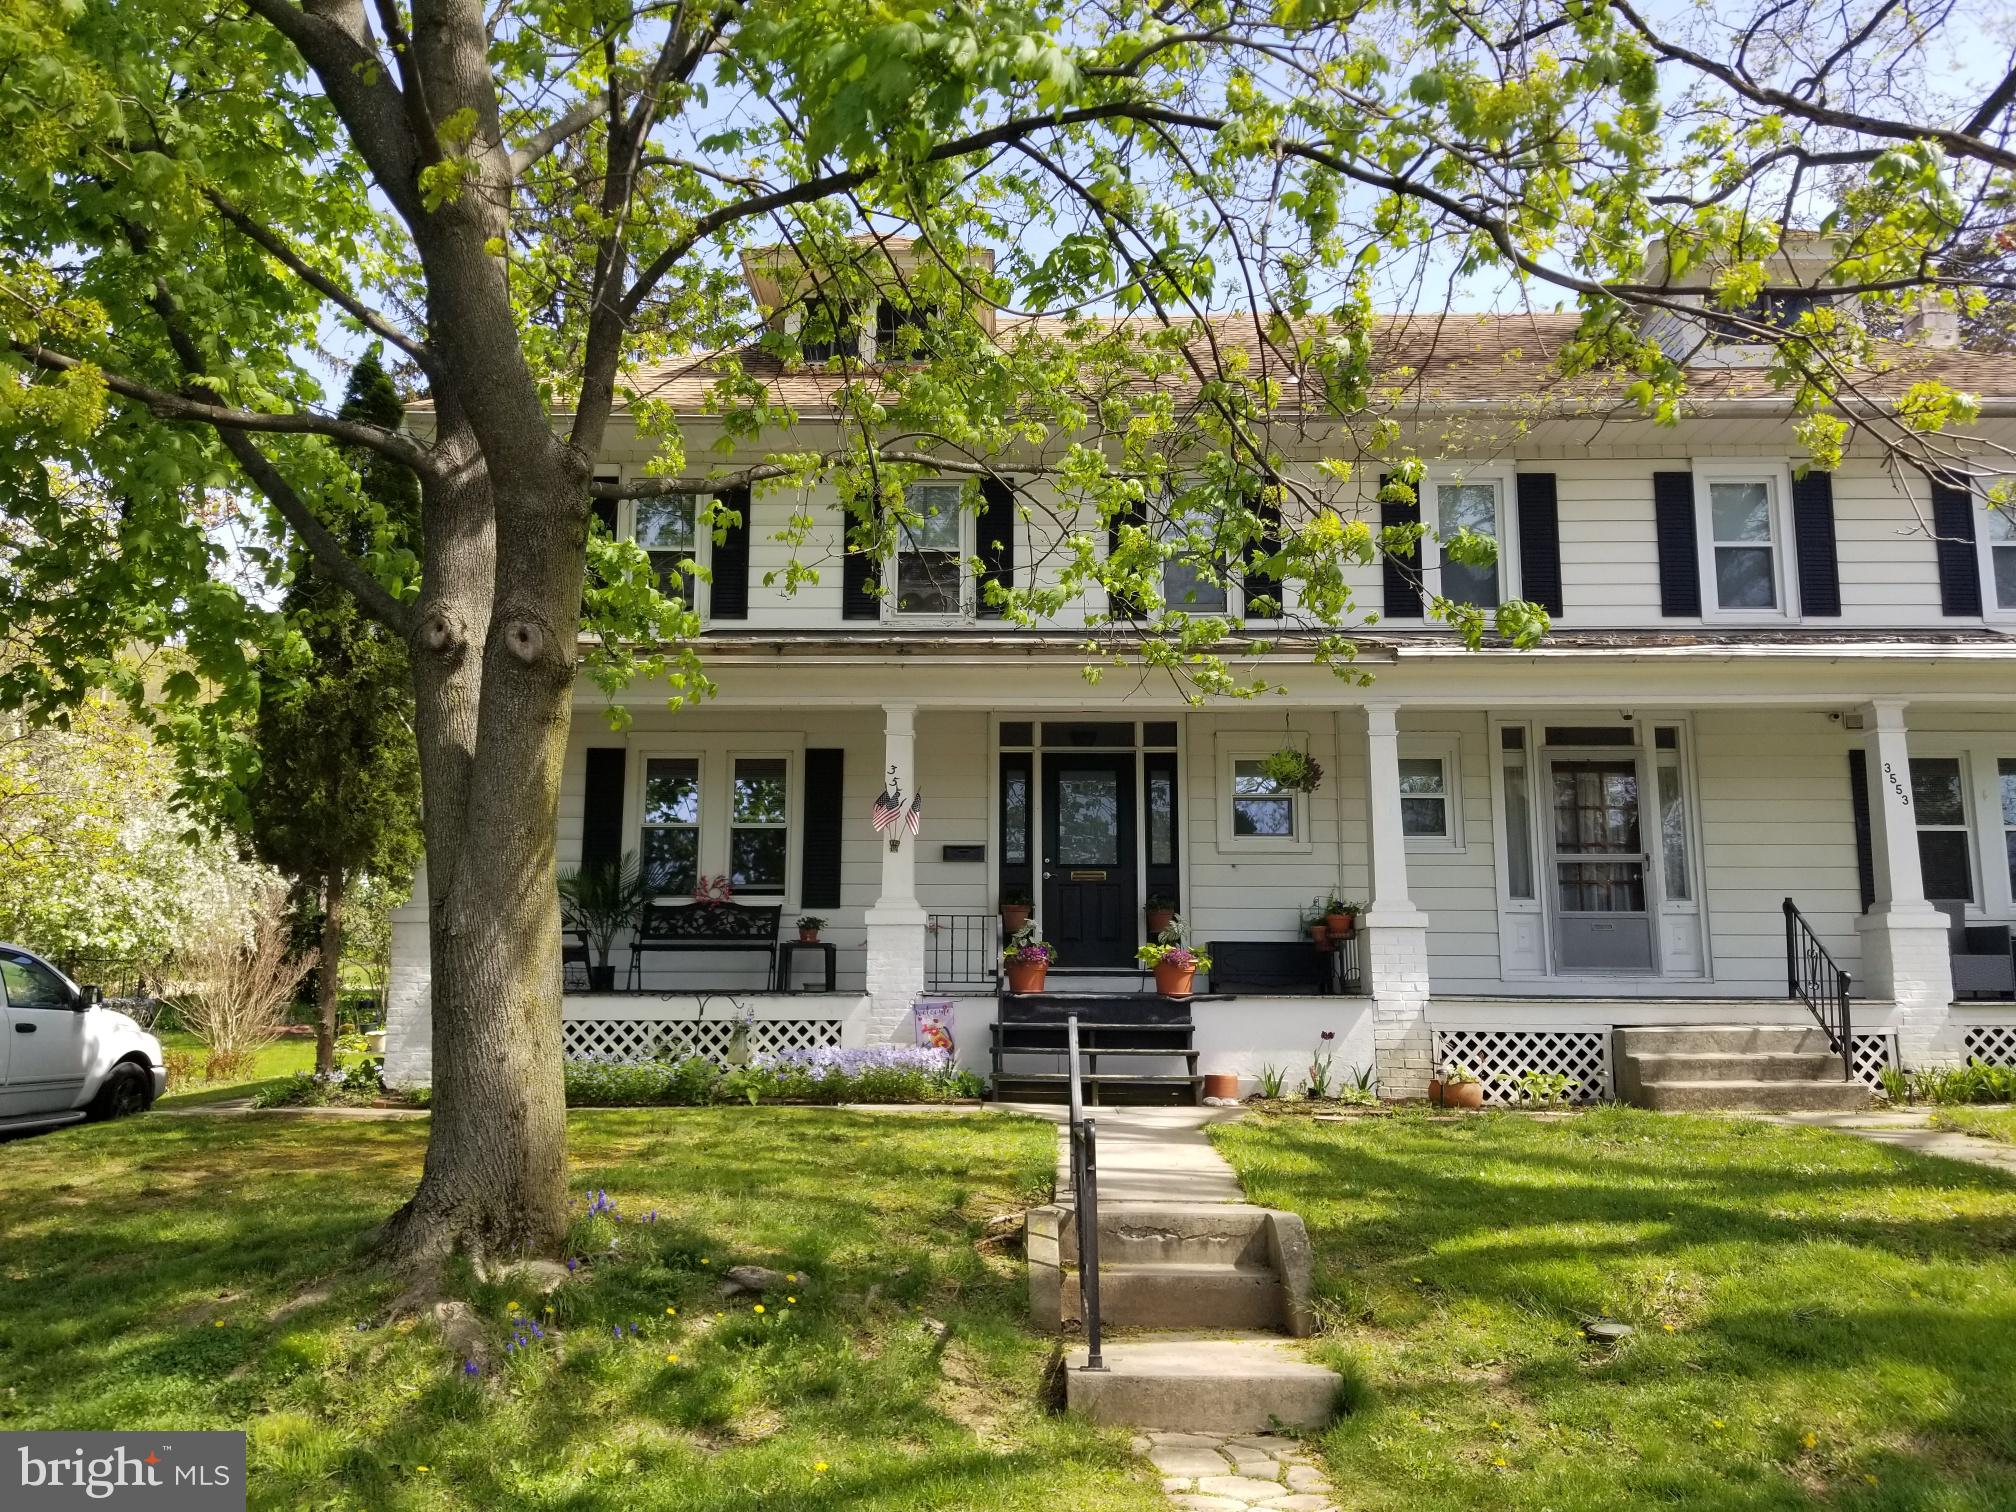 Nice St Lawrence Semi! Spacious! 3-4 bedrooms, inviting front porch, large backyard perfect for gardening!